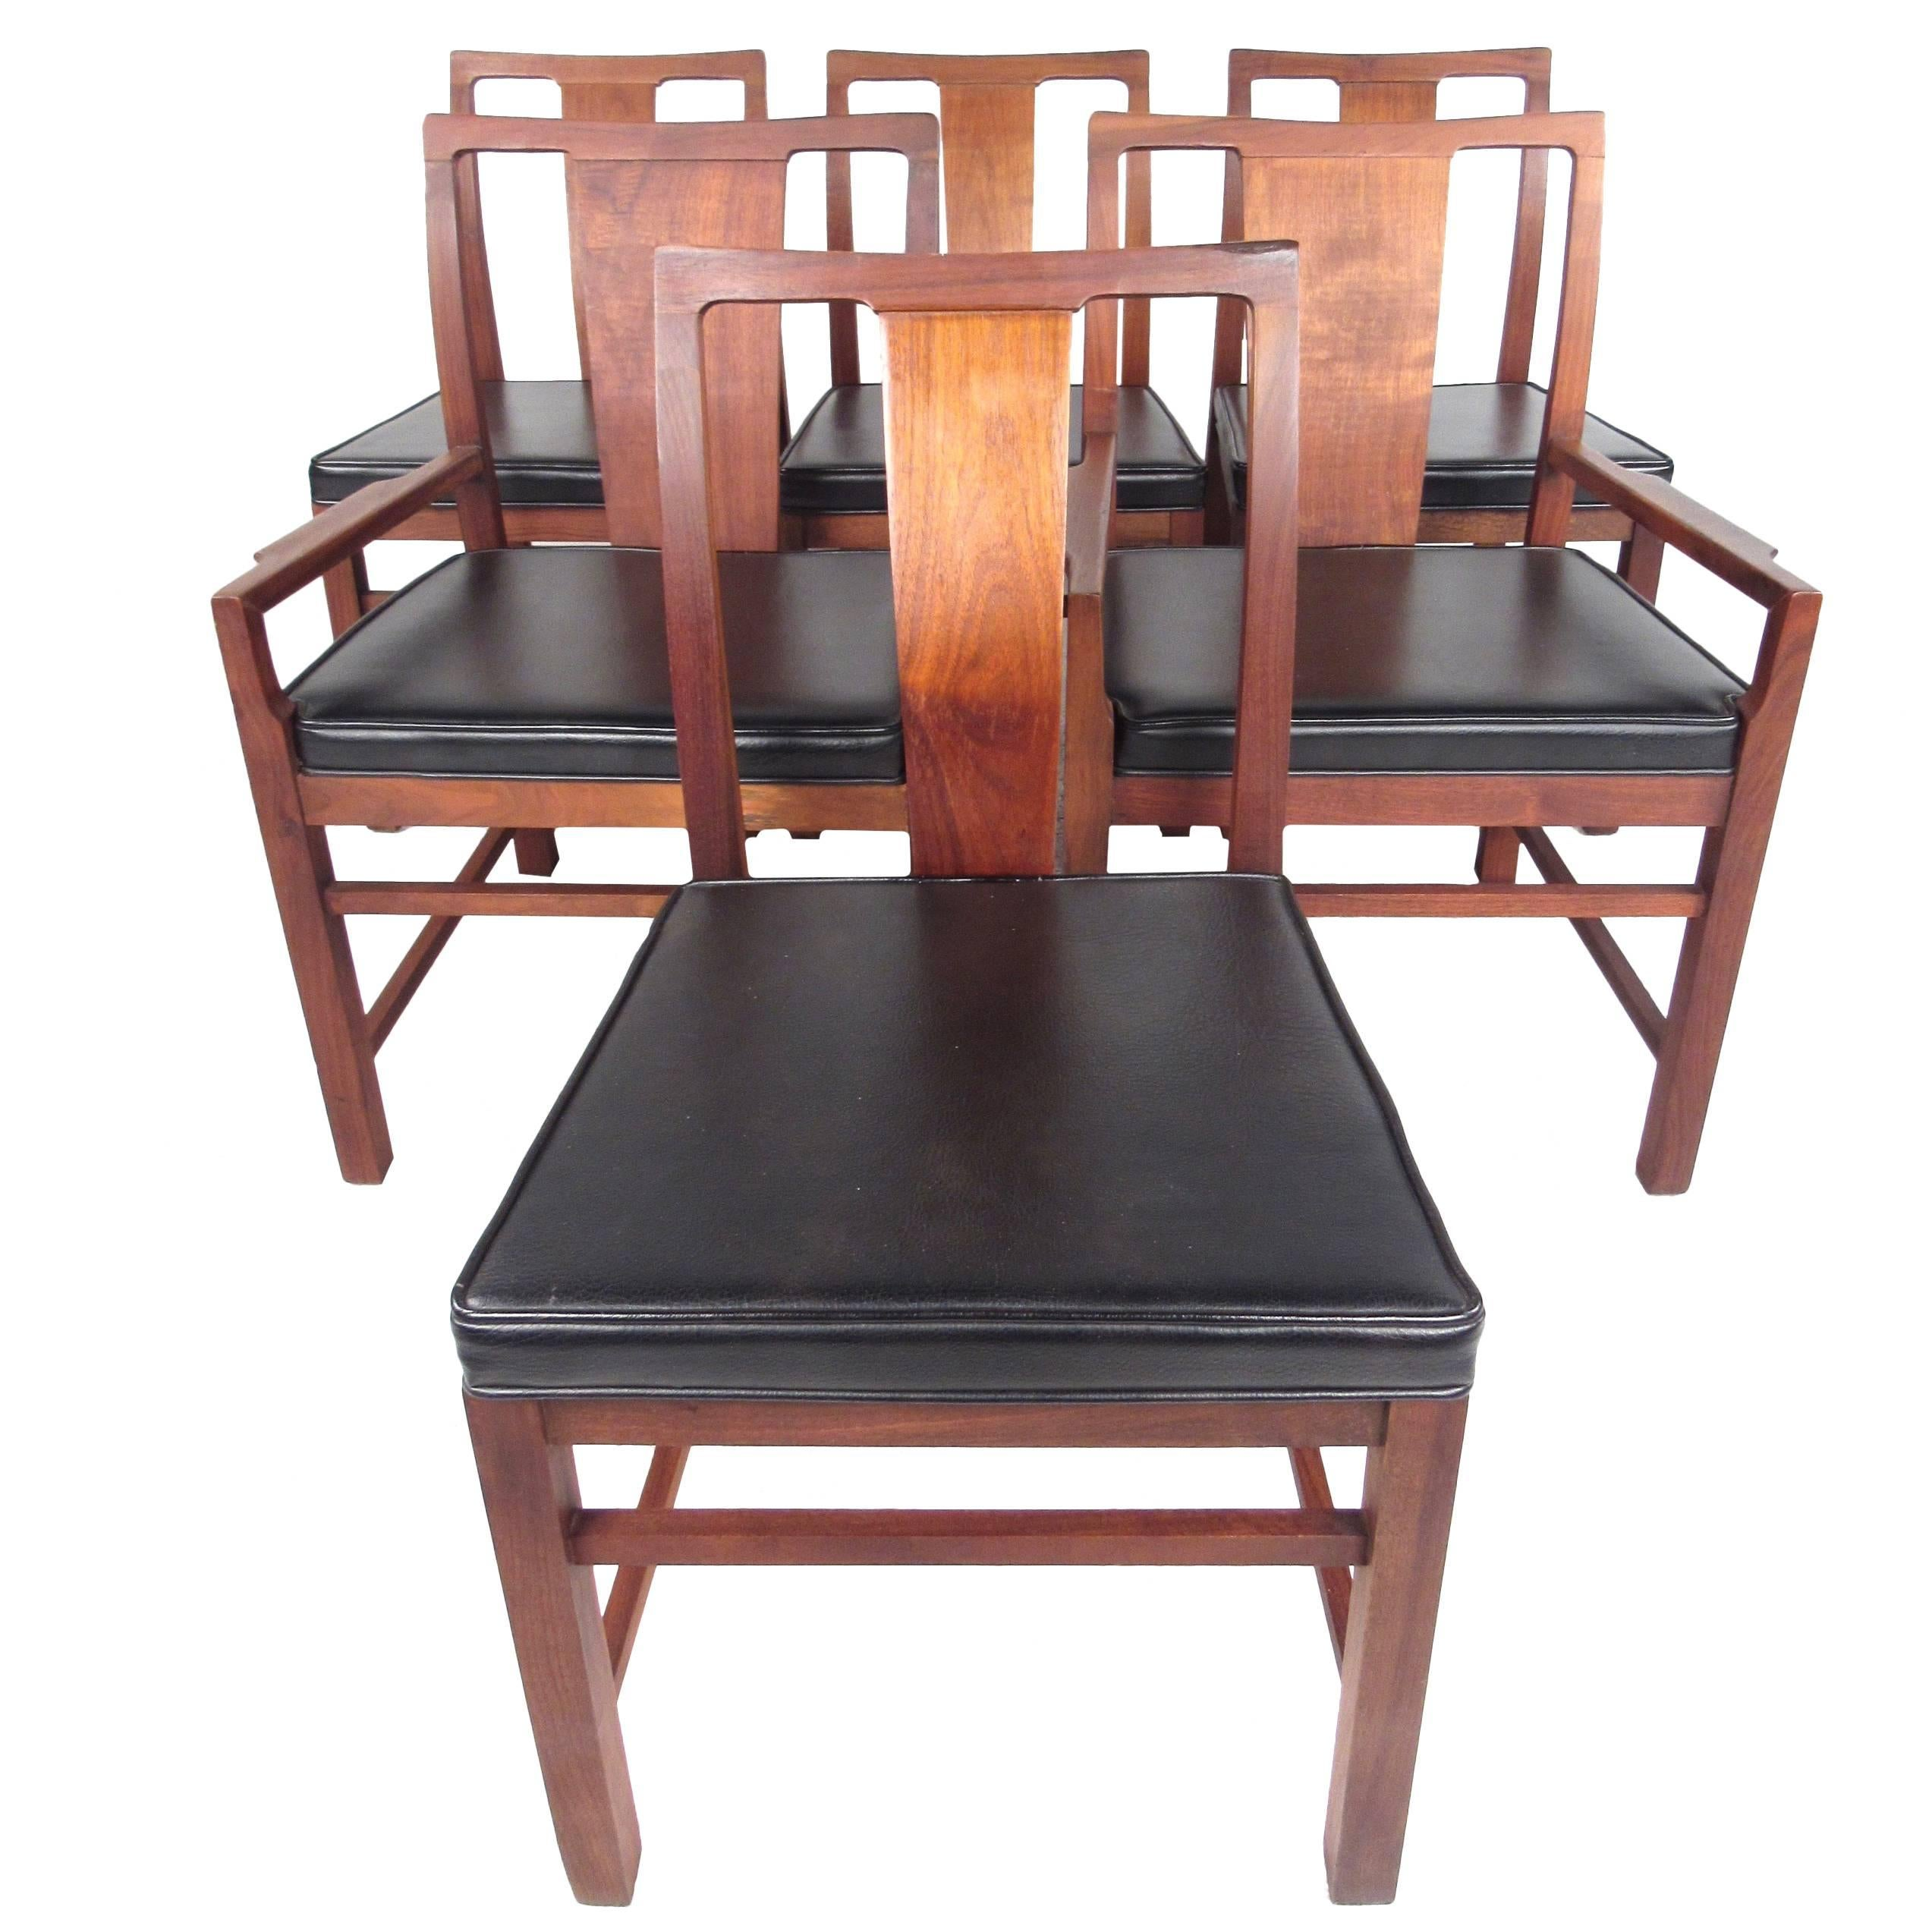 Set of Six Mid-Century Modern American Walnut Dining Chairs